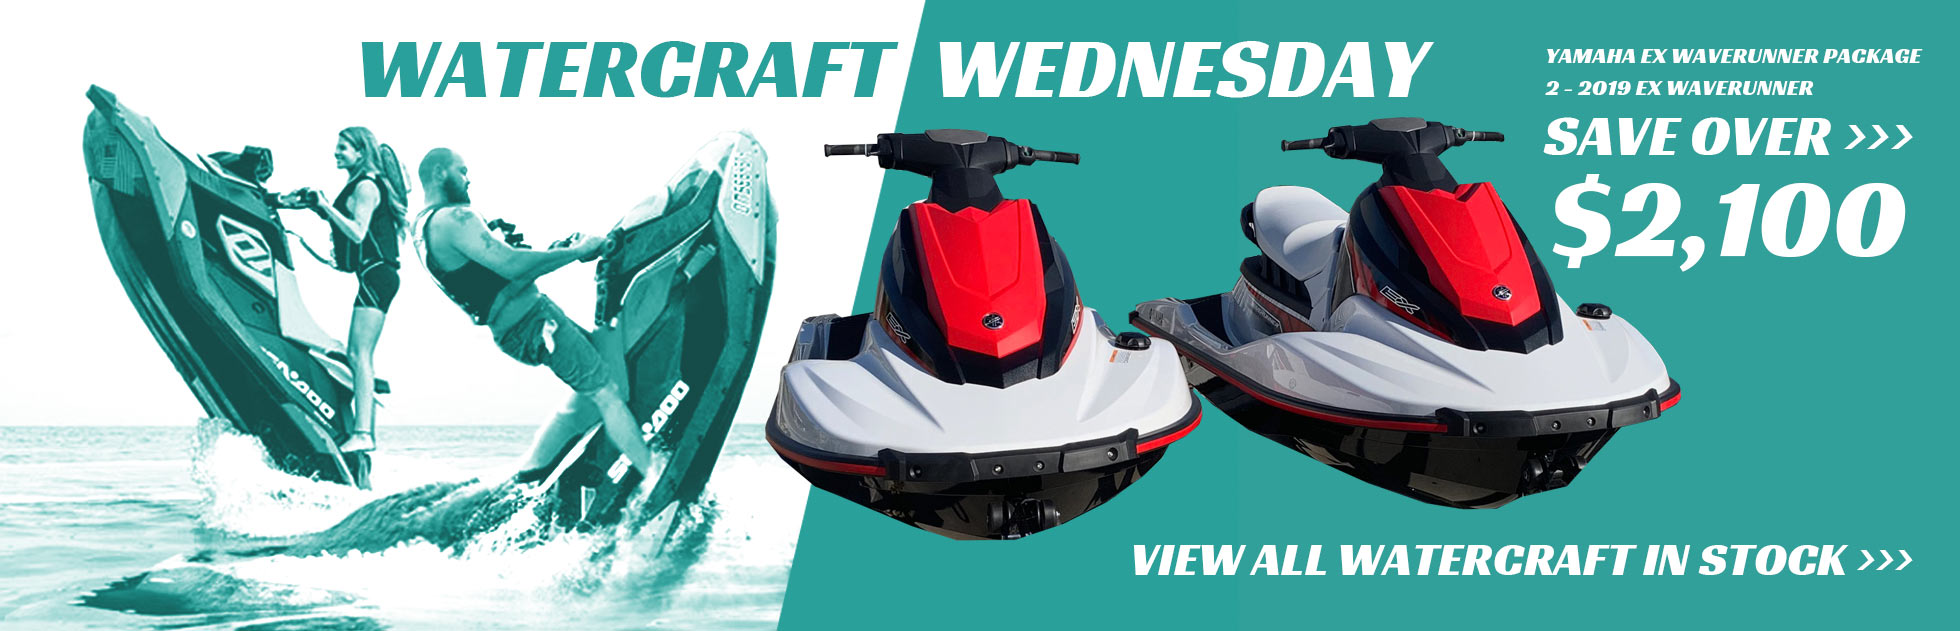 Watercraft Wednesdays